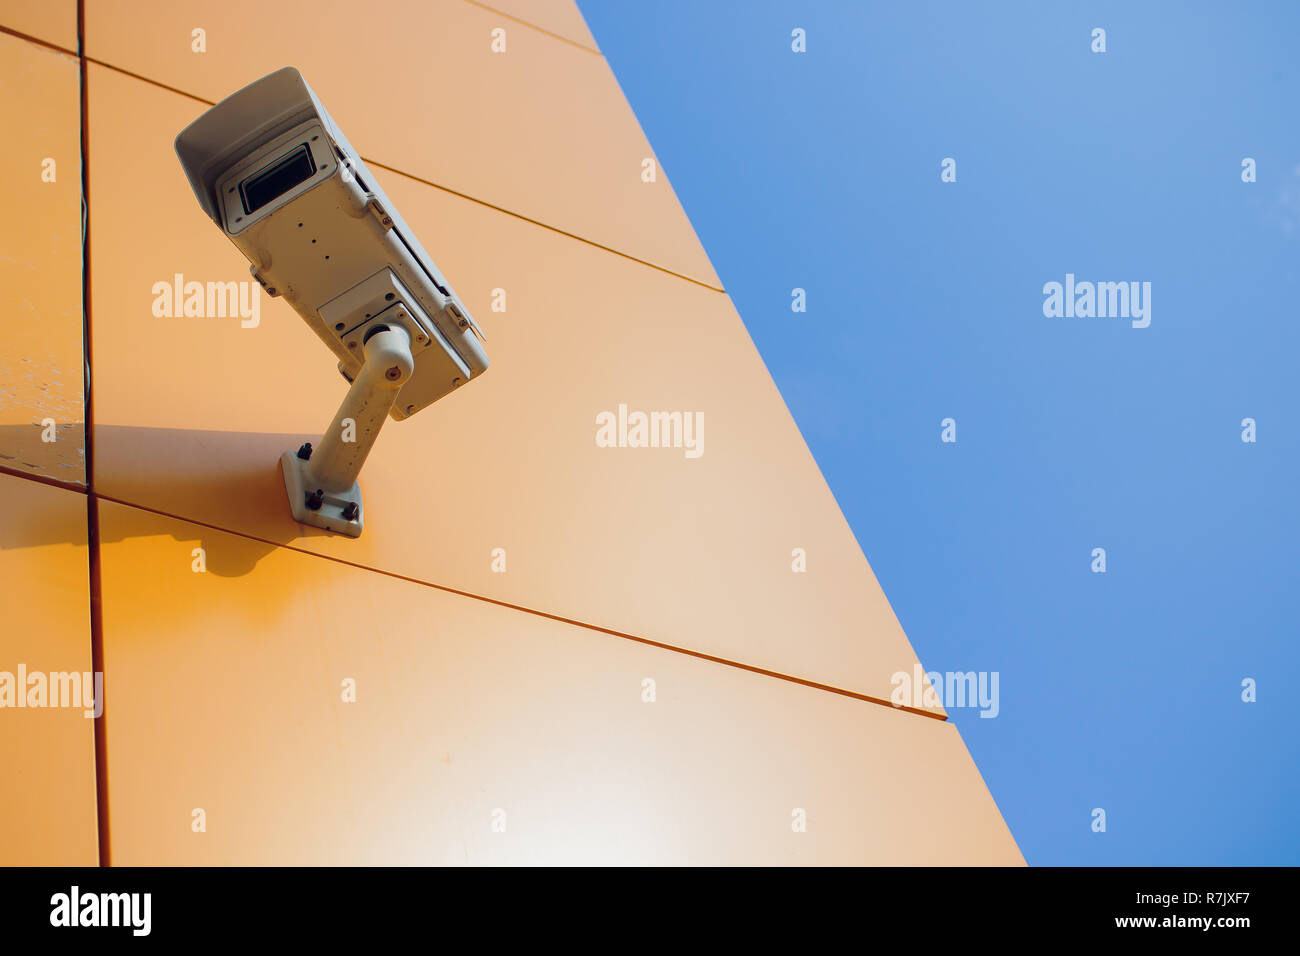 Modern CCTV camera on wall. A blurred night cityscape background. Concept of surveillance and monitoring. Toned image double exposure mock up - Stock Image